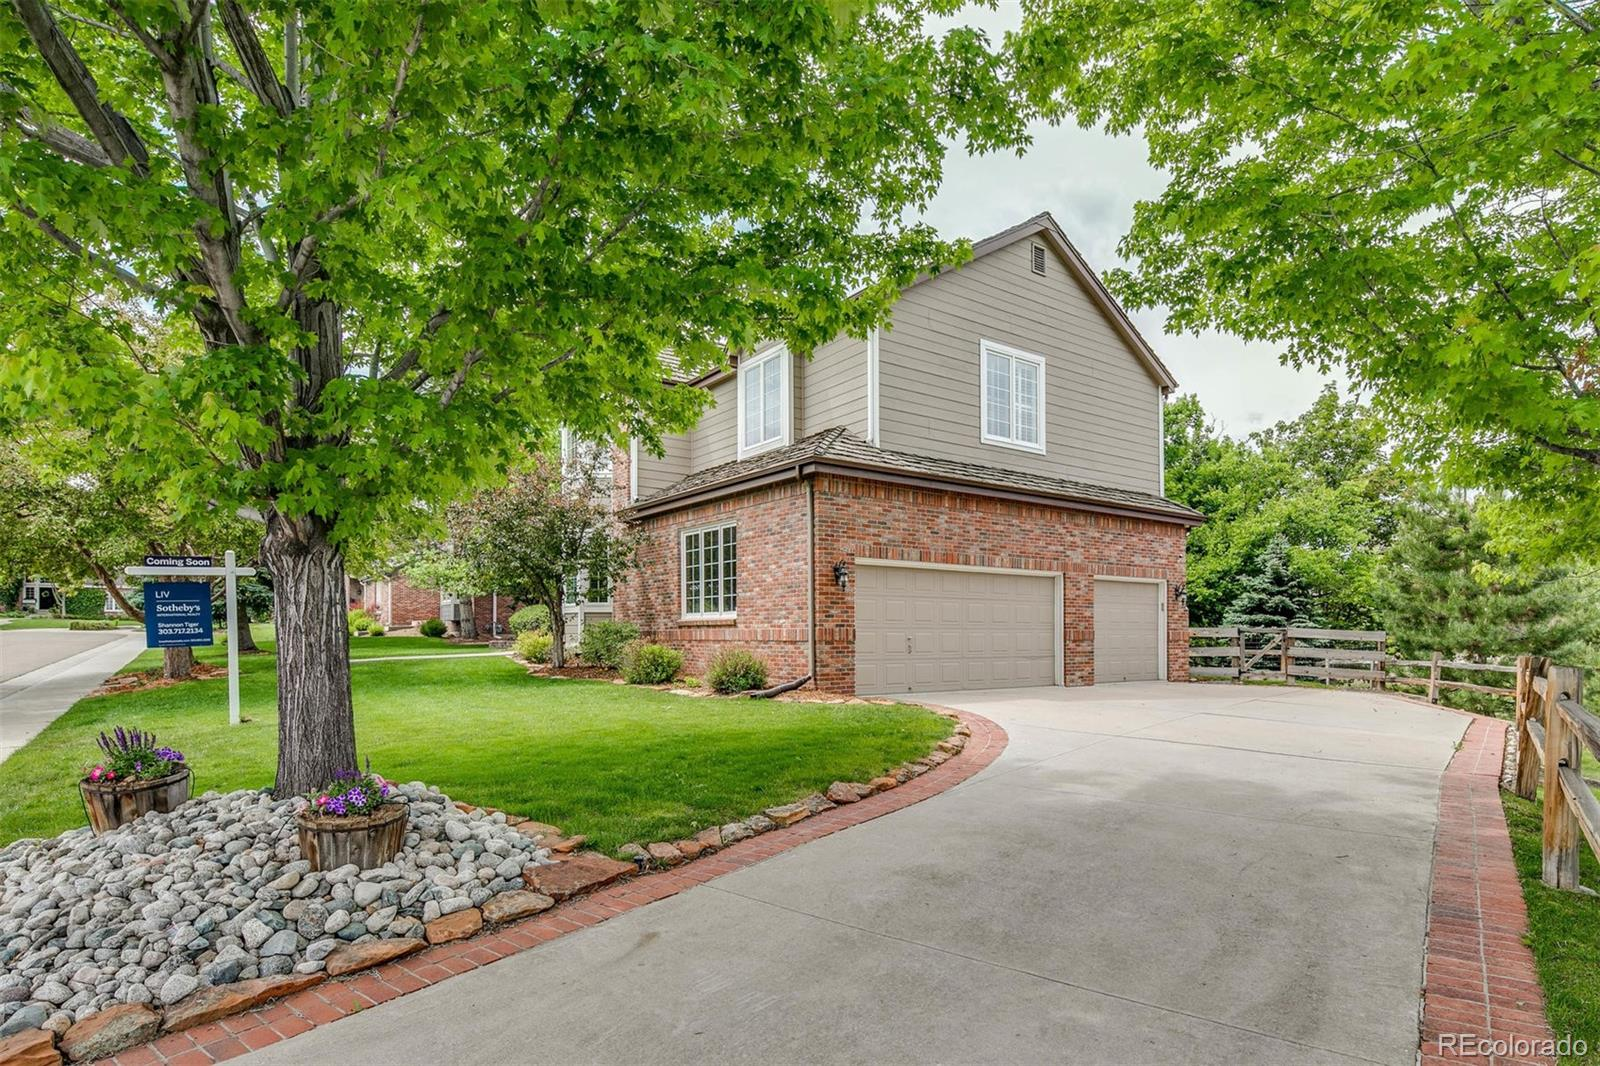 MLS# 9857155 - 3 - 9745 Edgewater Place, Lone Tree, CO 80124